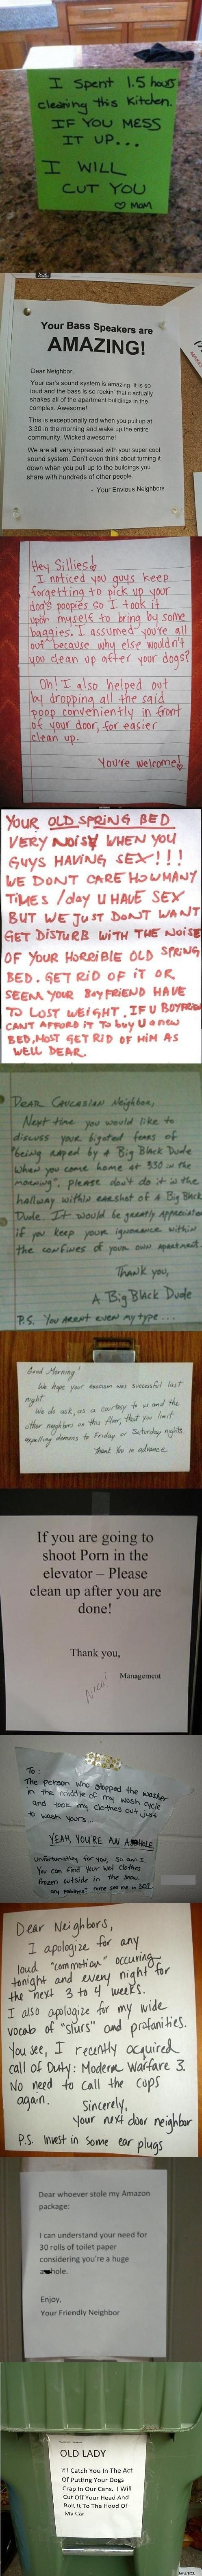 Dear Neighbor.  Funny signs left for annoying neighbors.: Aggressive Note, Signs, Apartment Life, Mothers, Passive Aggressive, Funny Stuff, Apartment Living, So Funny, The One